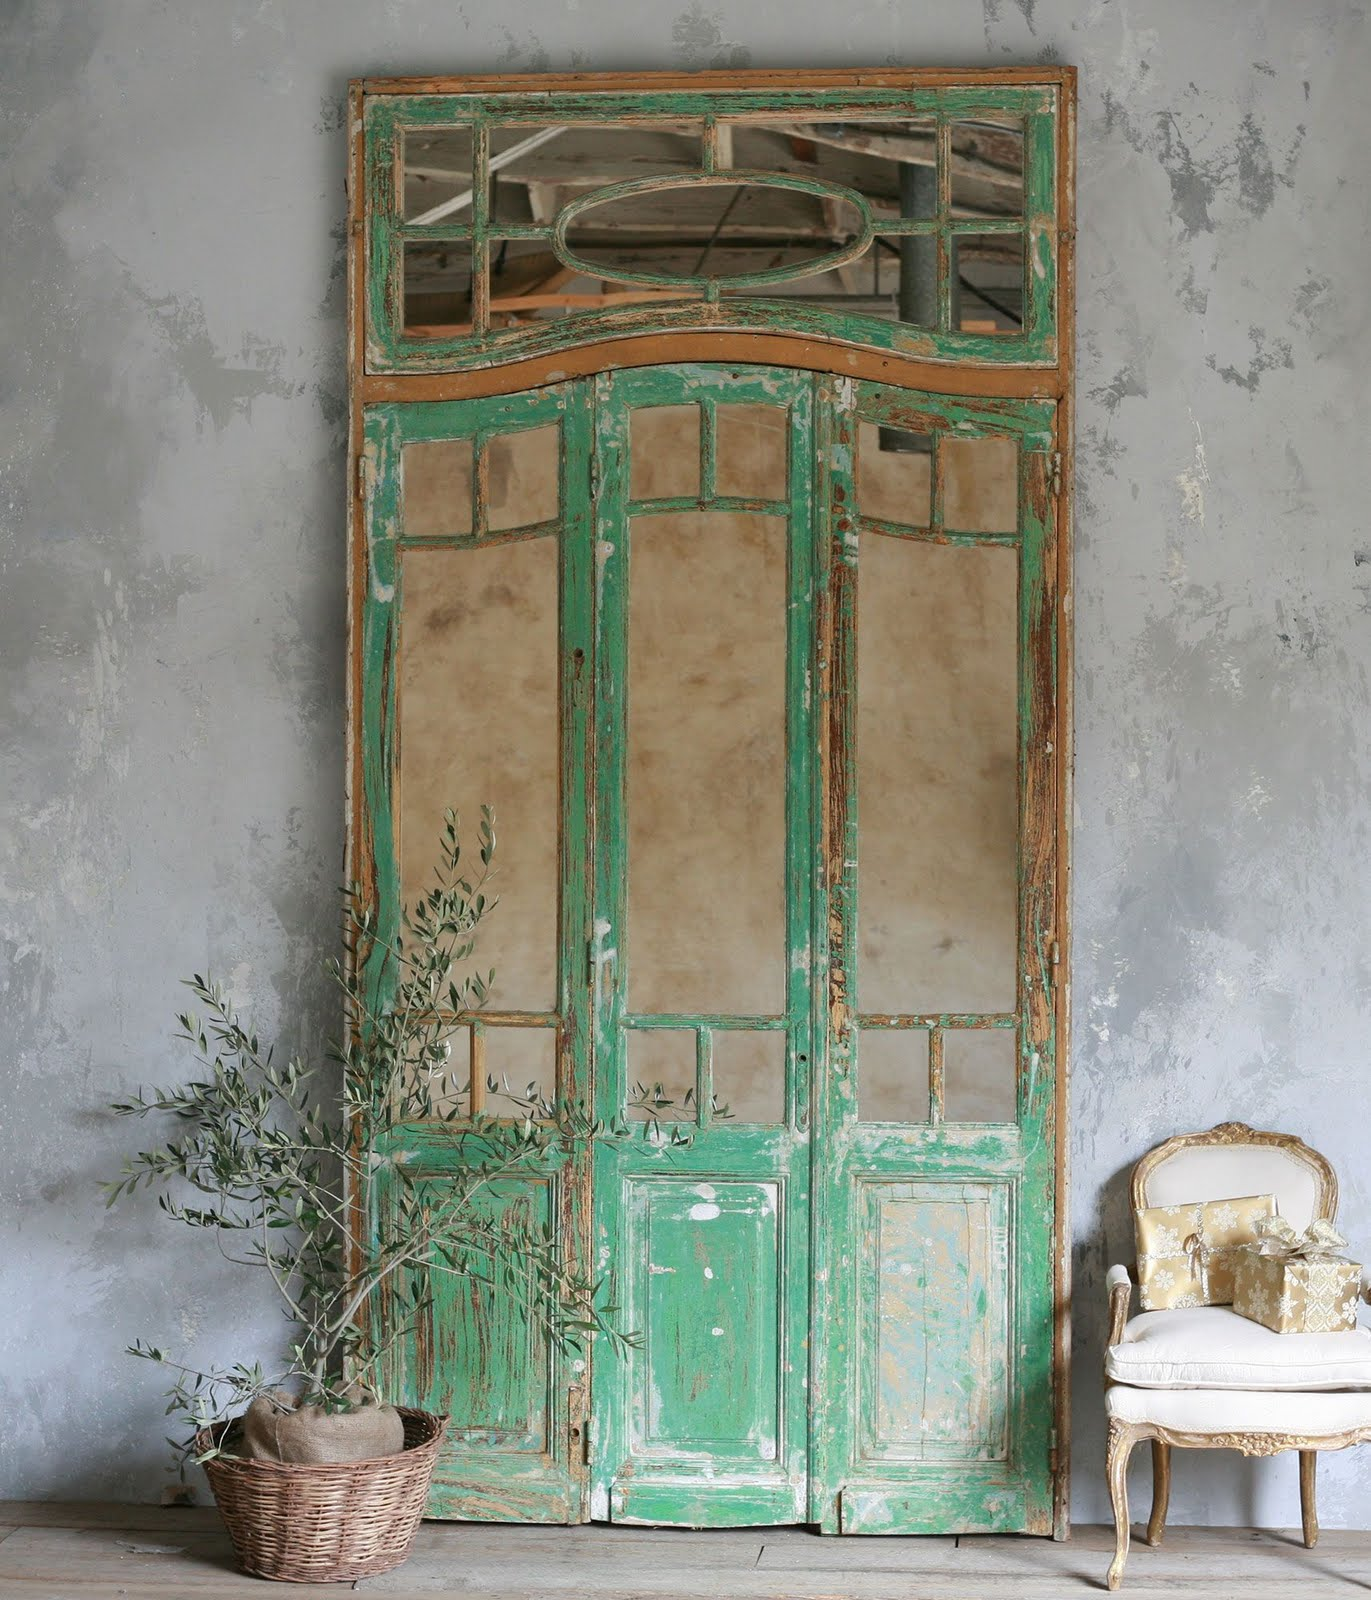 What Do You Think, Do You Like The True Vintage Mix That These Doors Give  In A Space?